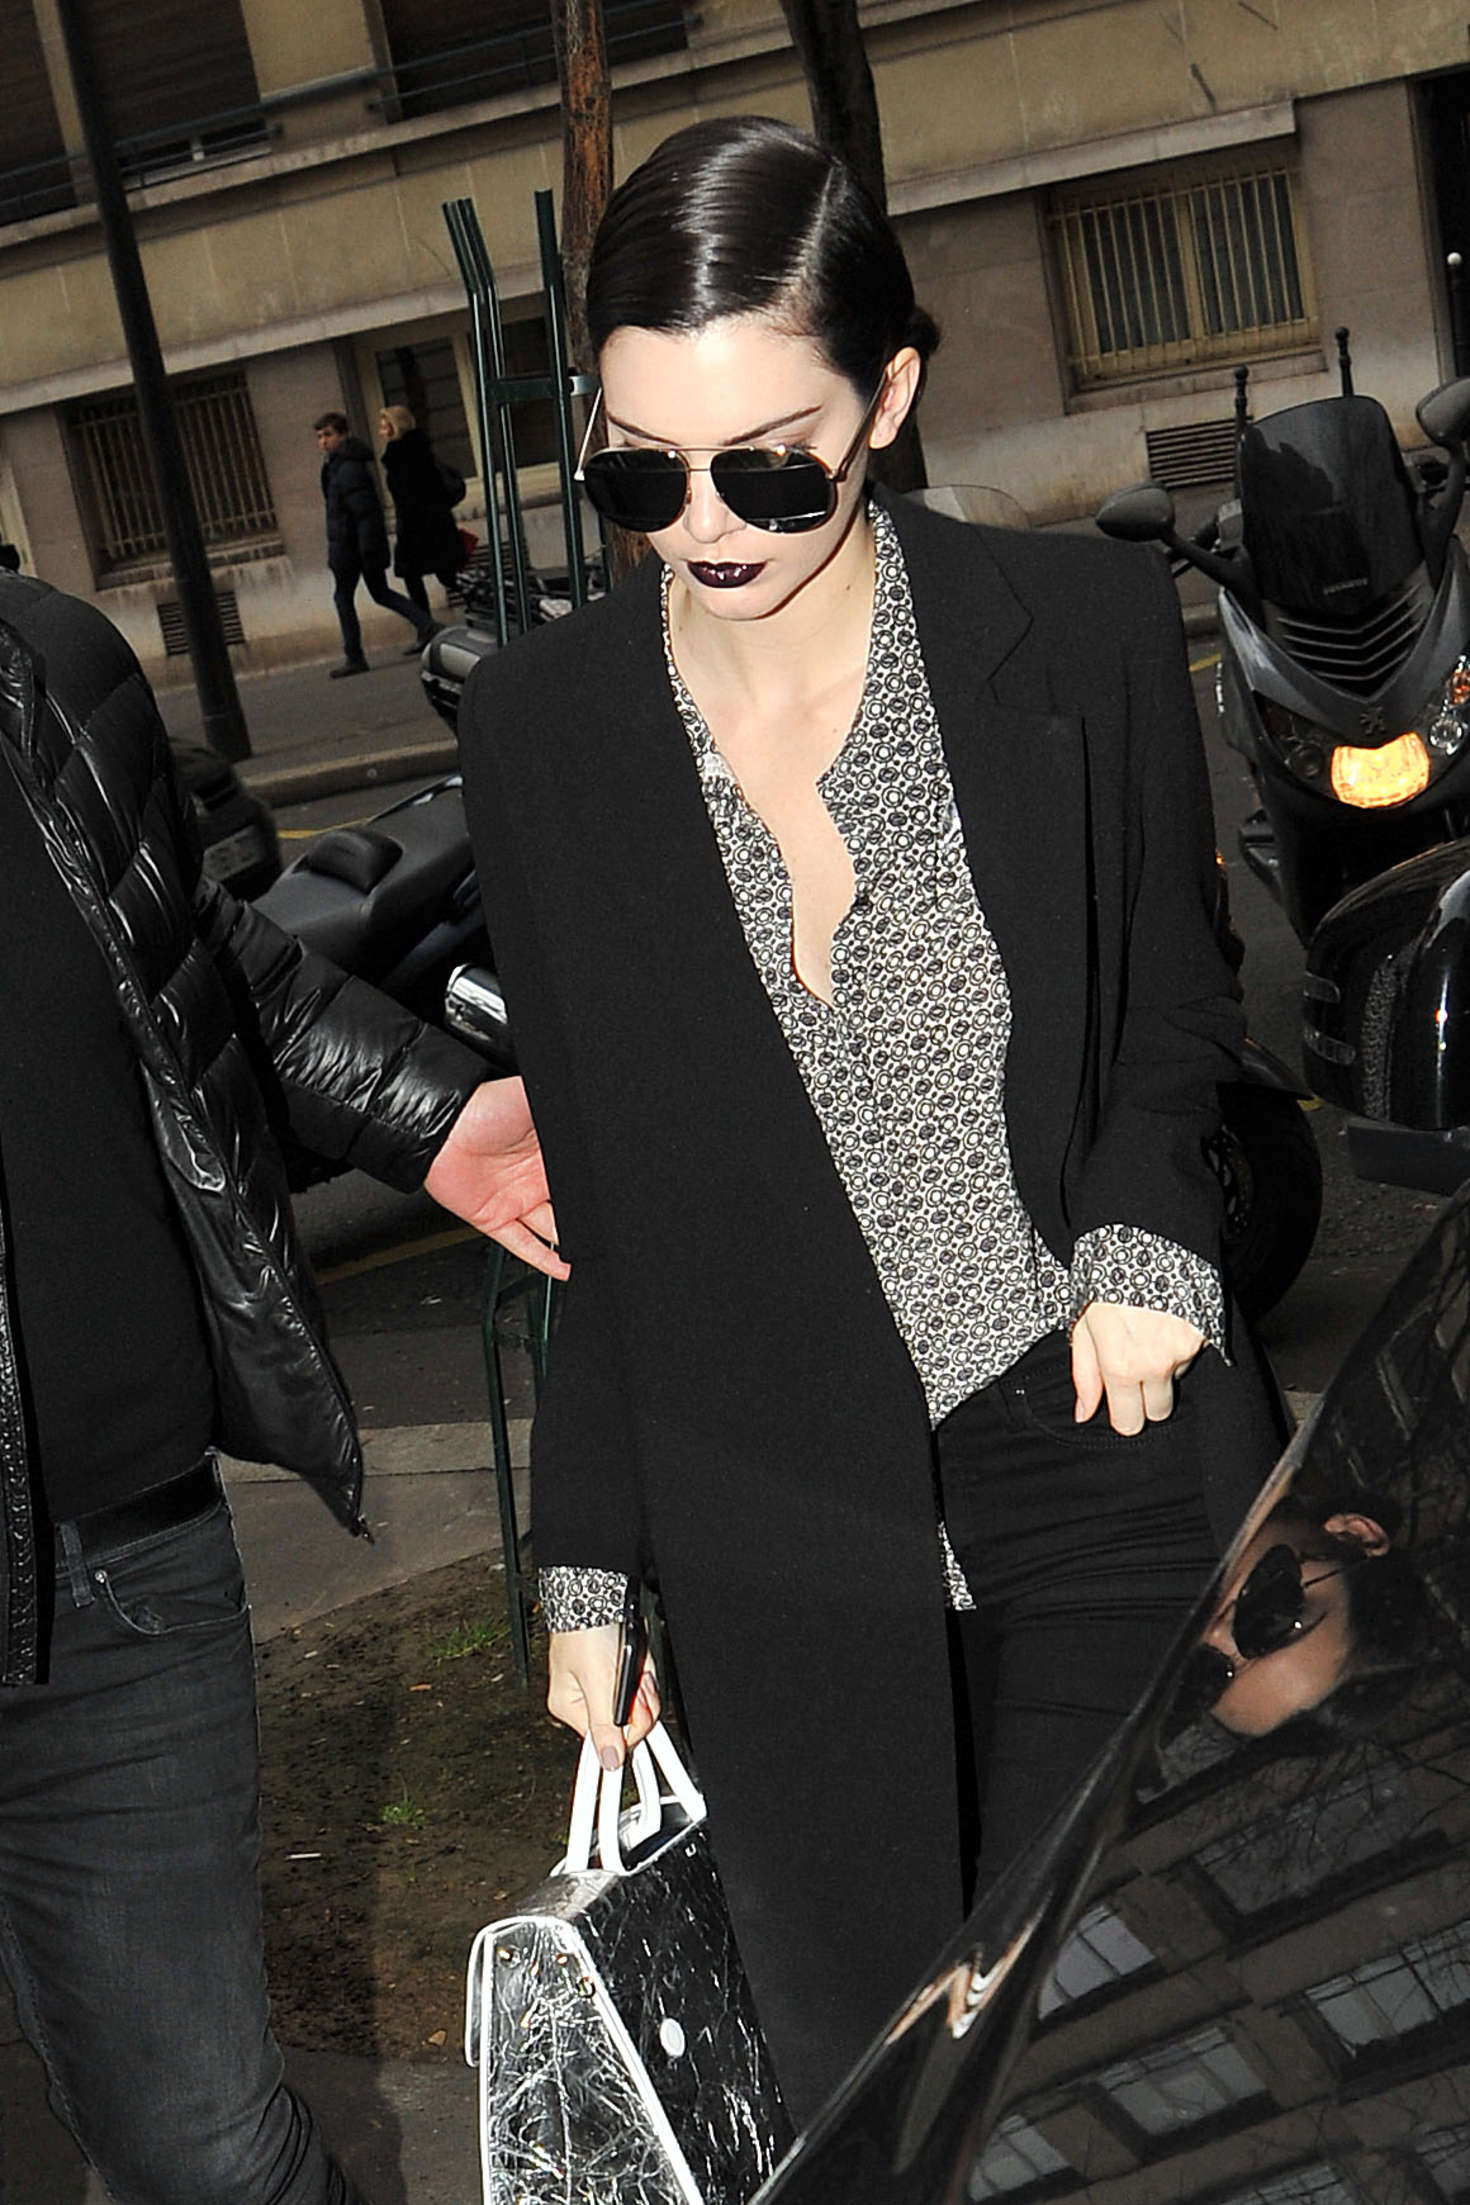 Kendall Jenner 2016 : Kendall Jenner: Heading to Elie Saab Show 2016 -09